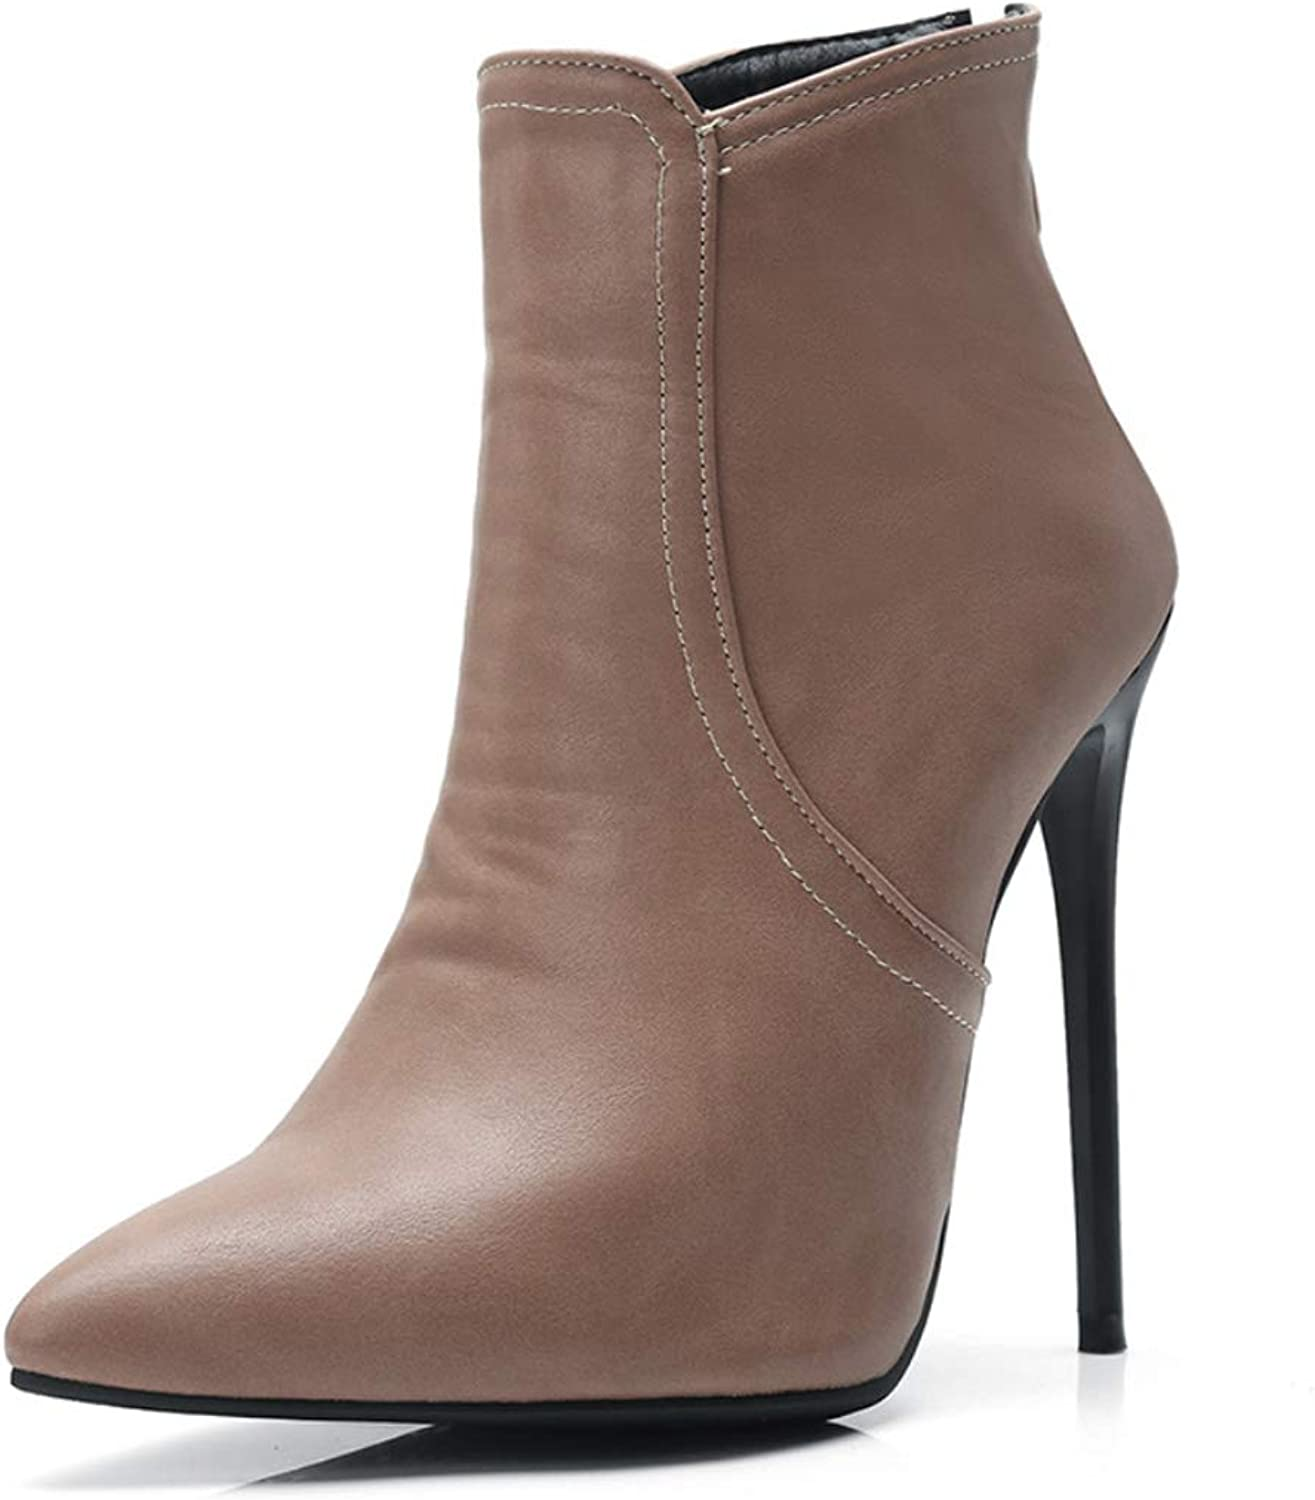 Women's Ankle Boots Fashion Boots Winter Boots Stiletto Heel Closed Toe Booties